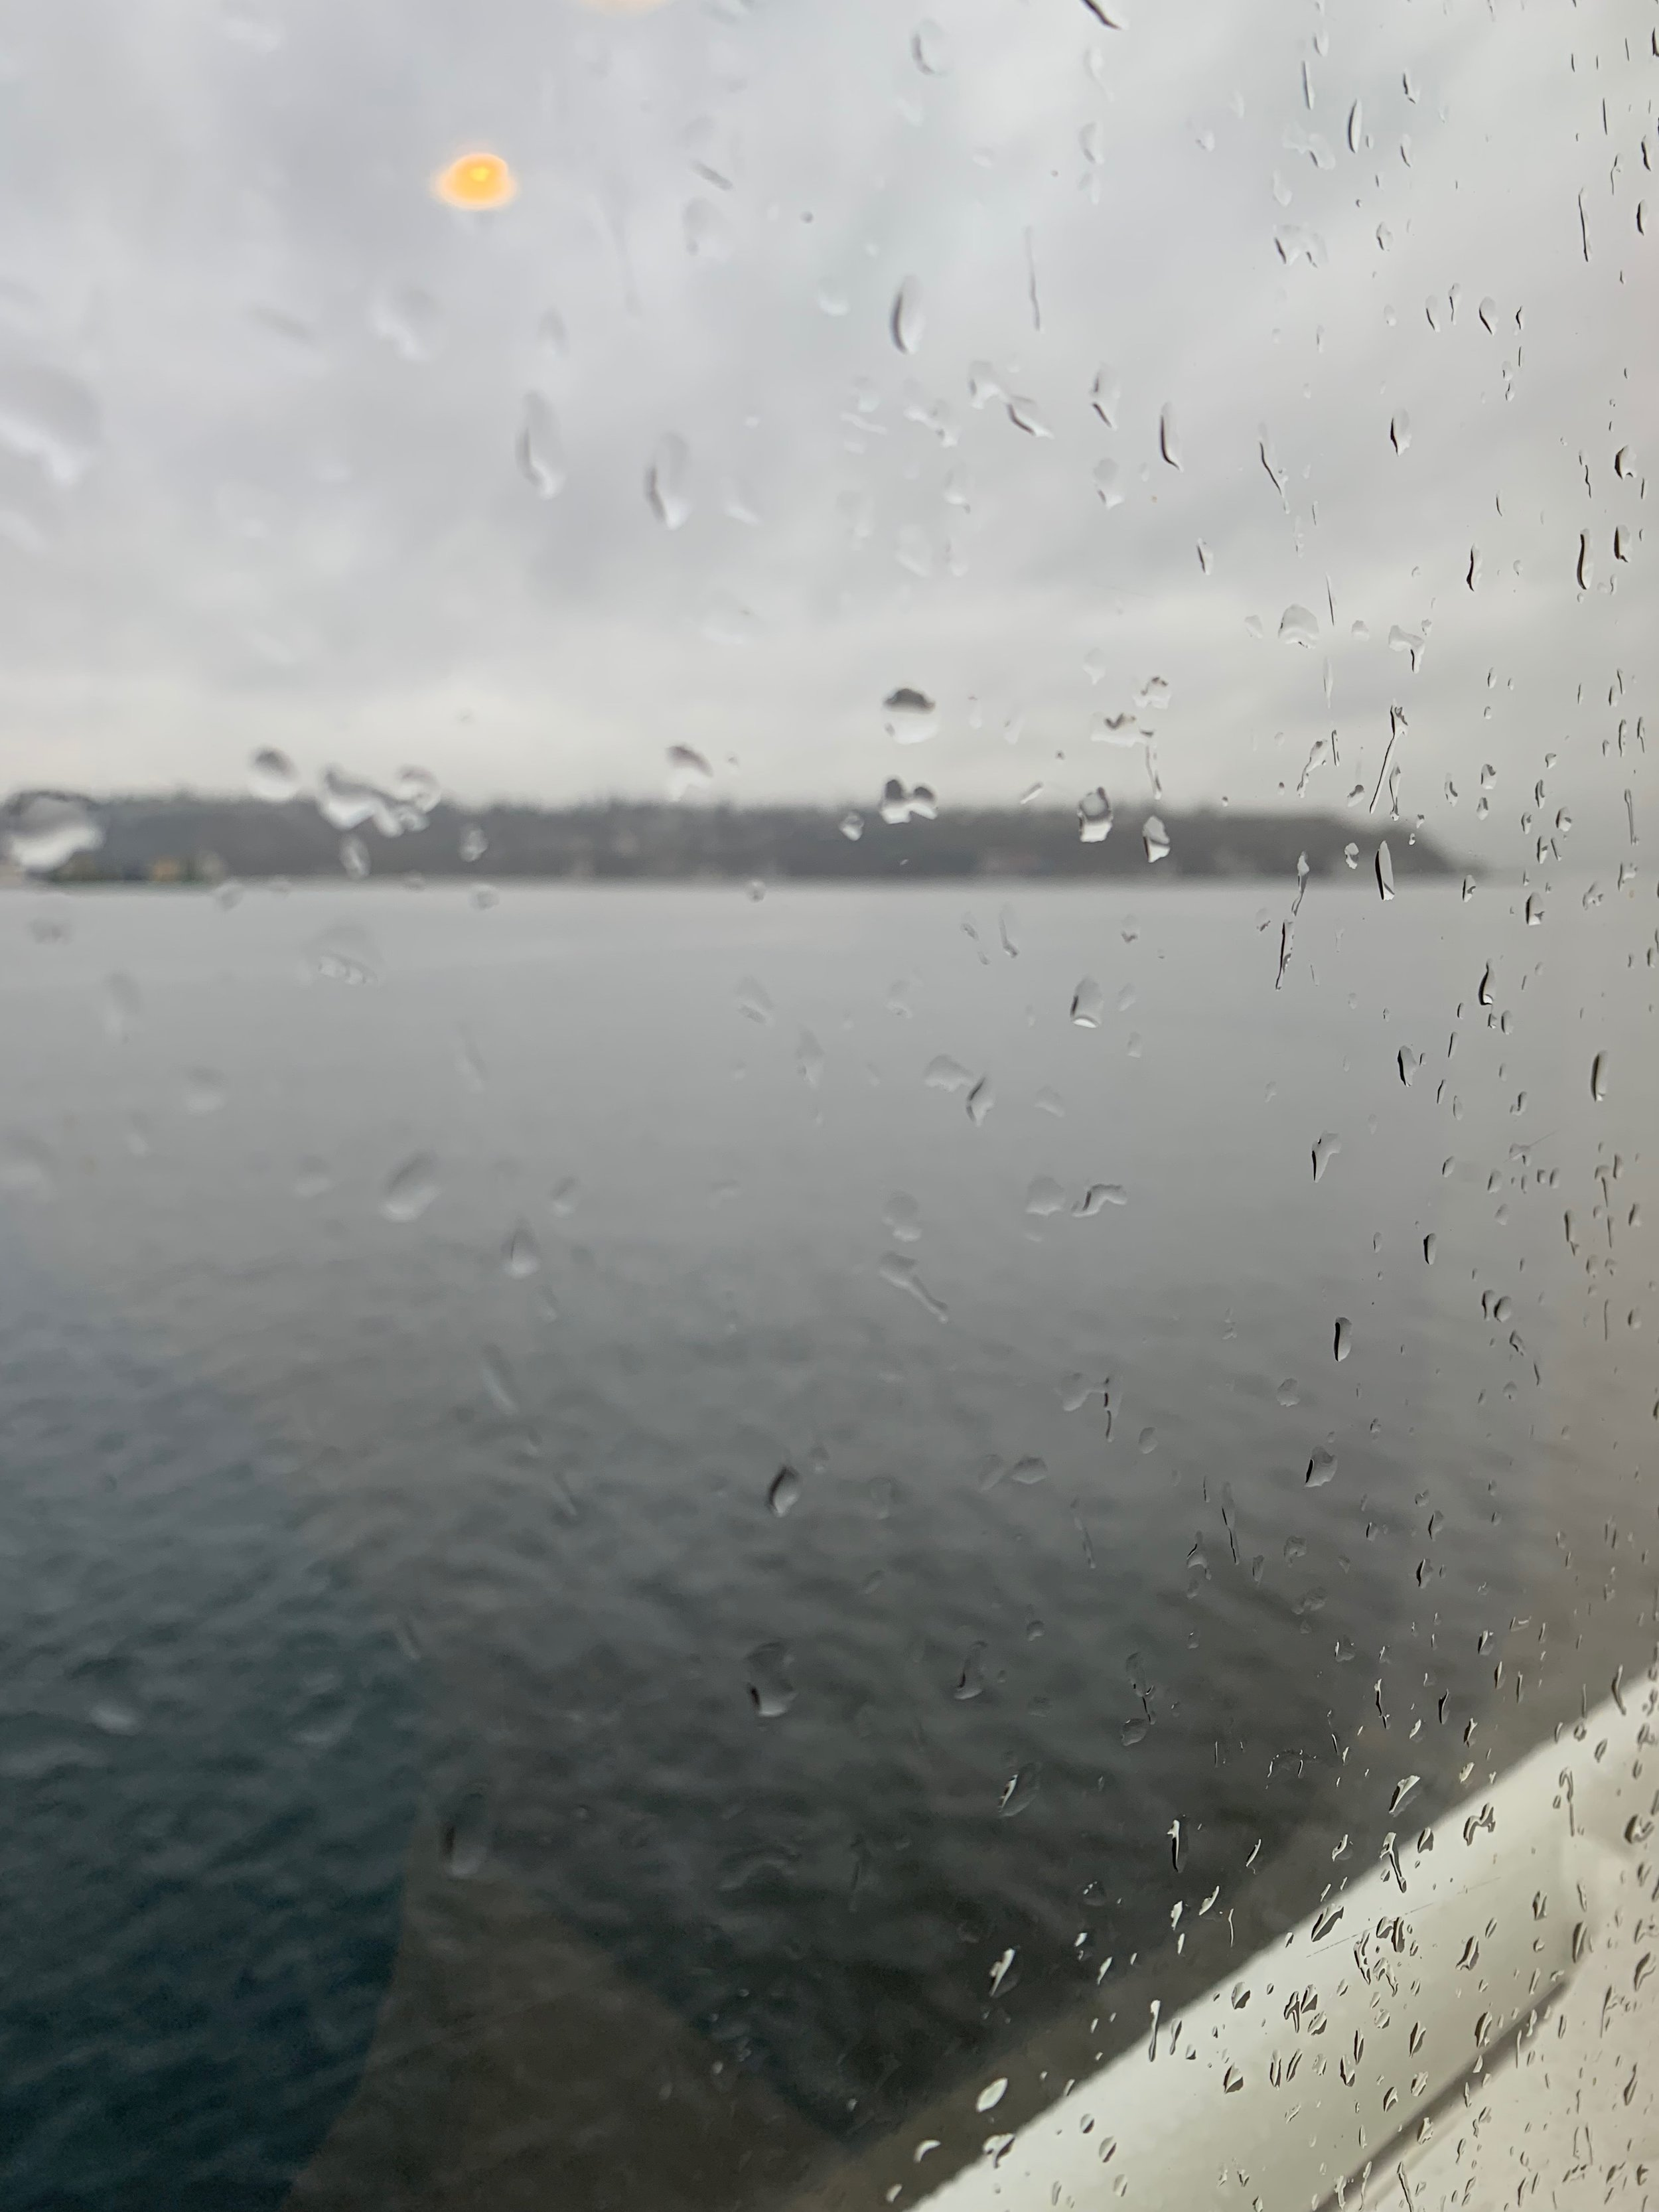 Taking the ferry from Seattle to get to Gray Wolf Ranch.